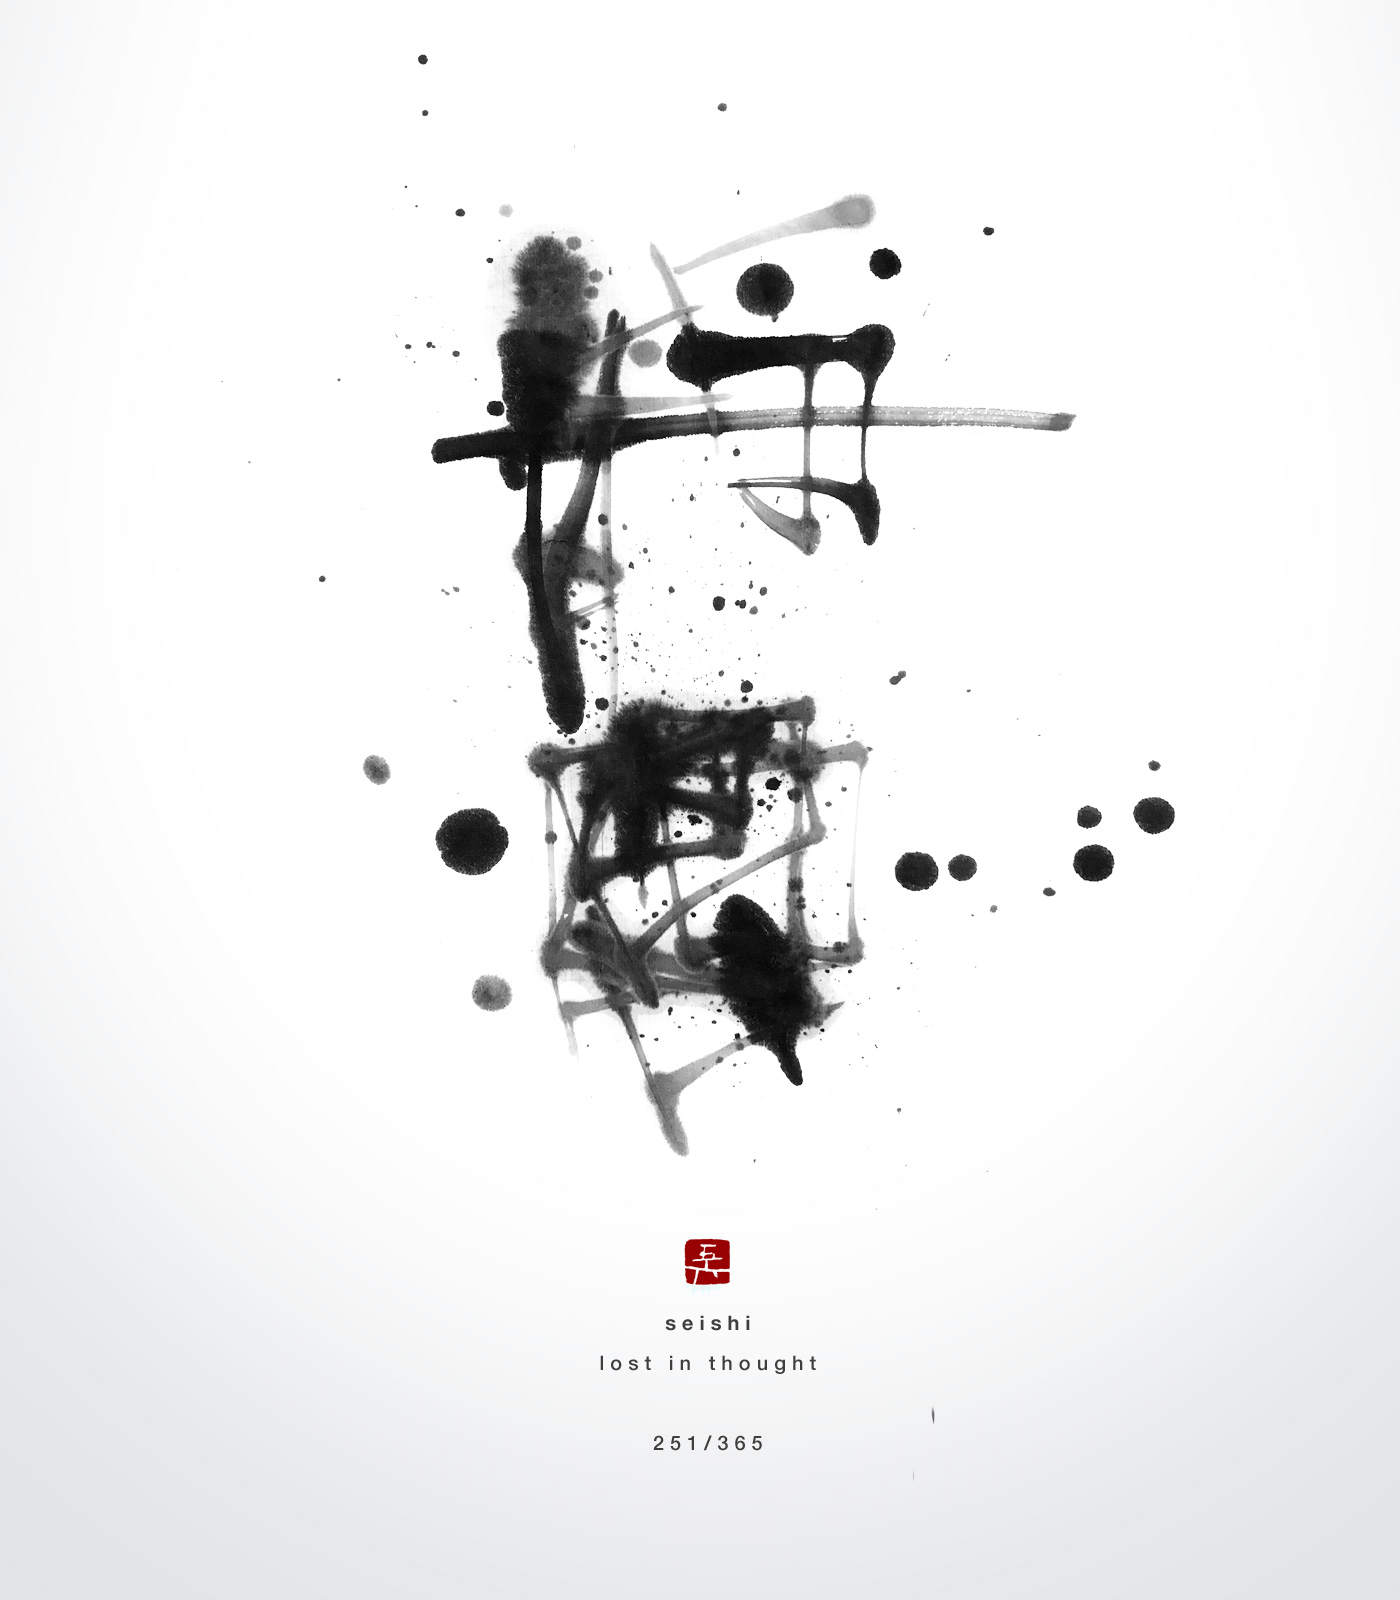 静思 | lost in thought 書道作品 japaneseart japanese calligraphy 書家 田川悟郎 Goroh Tagawa